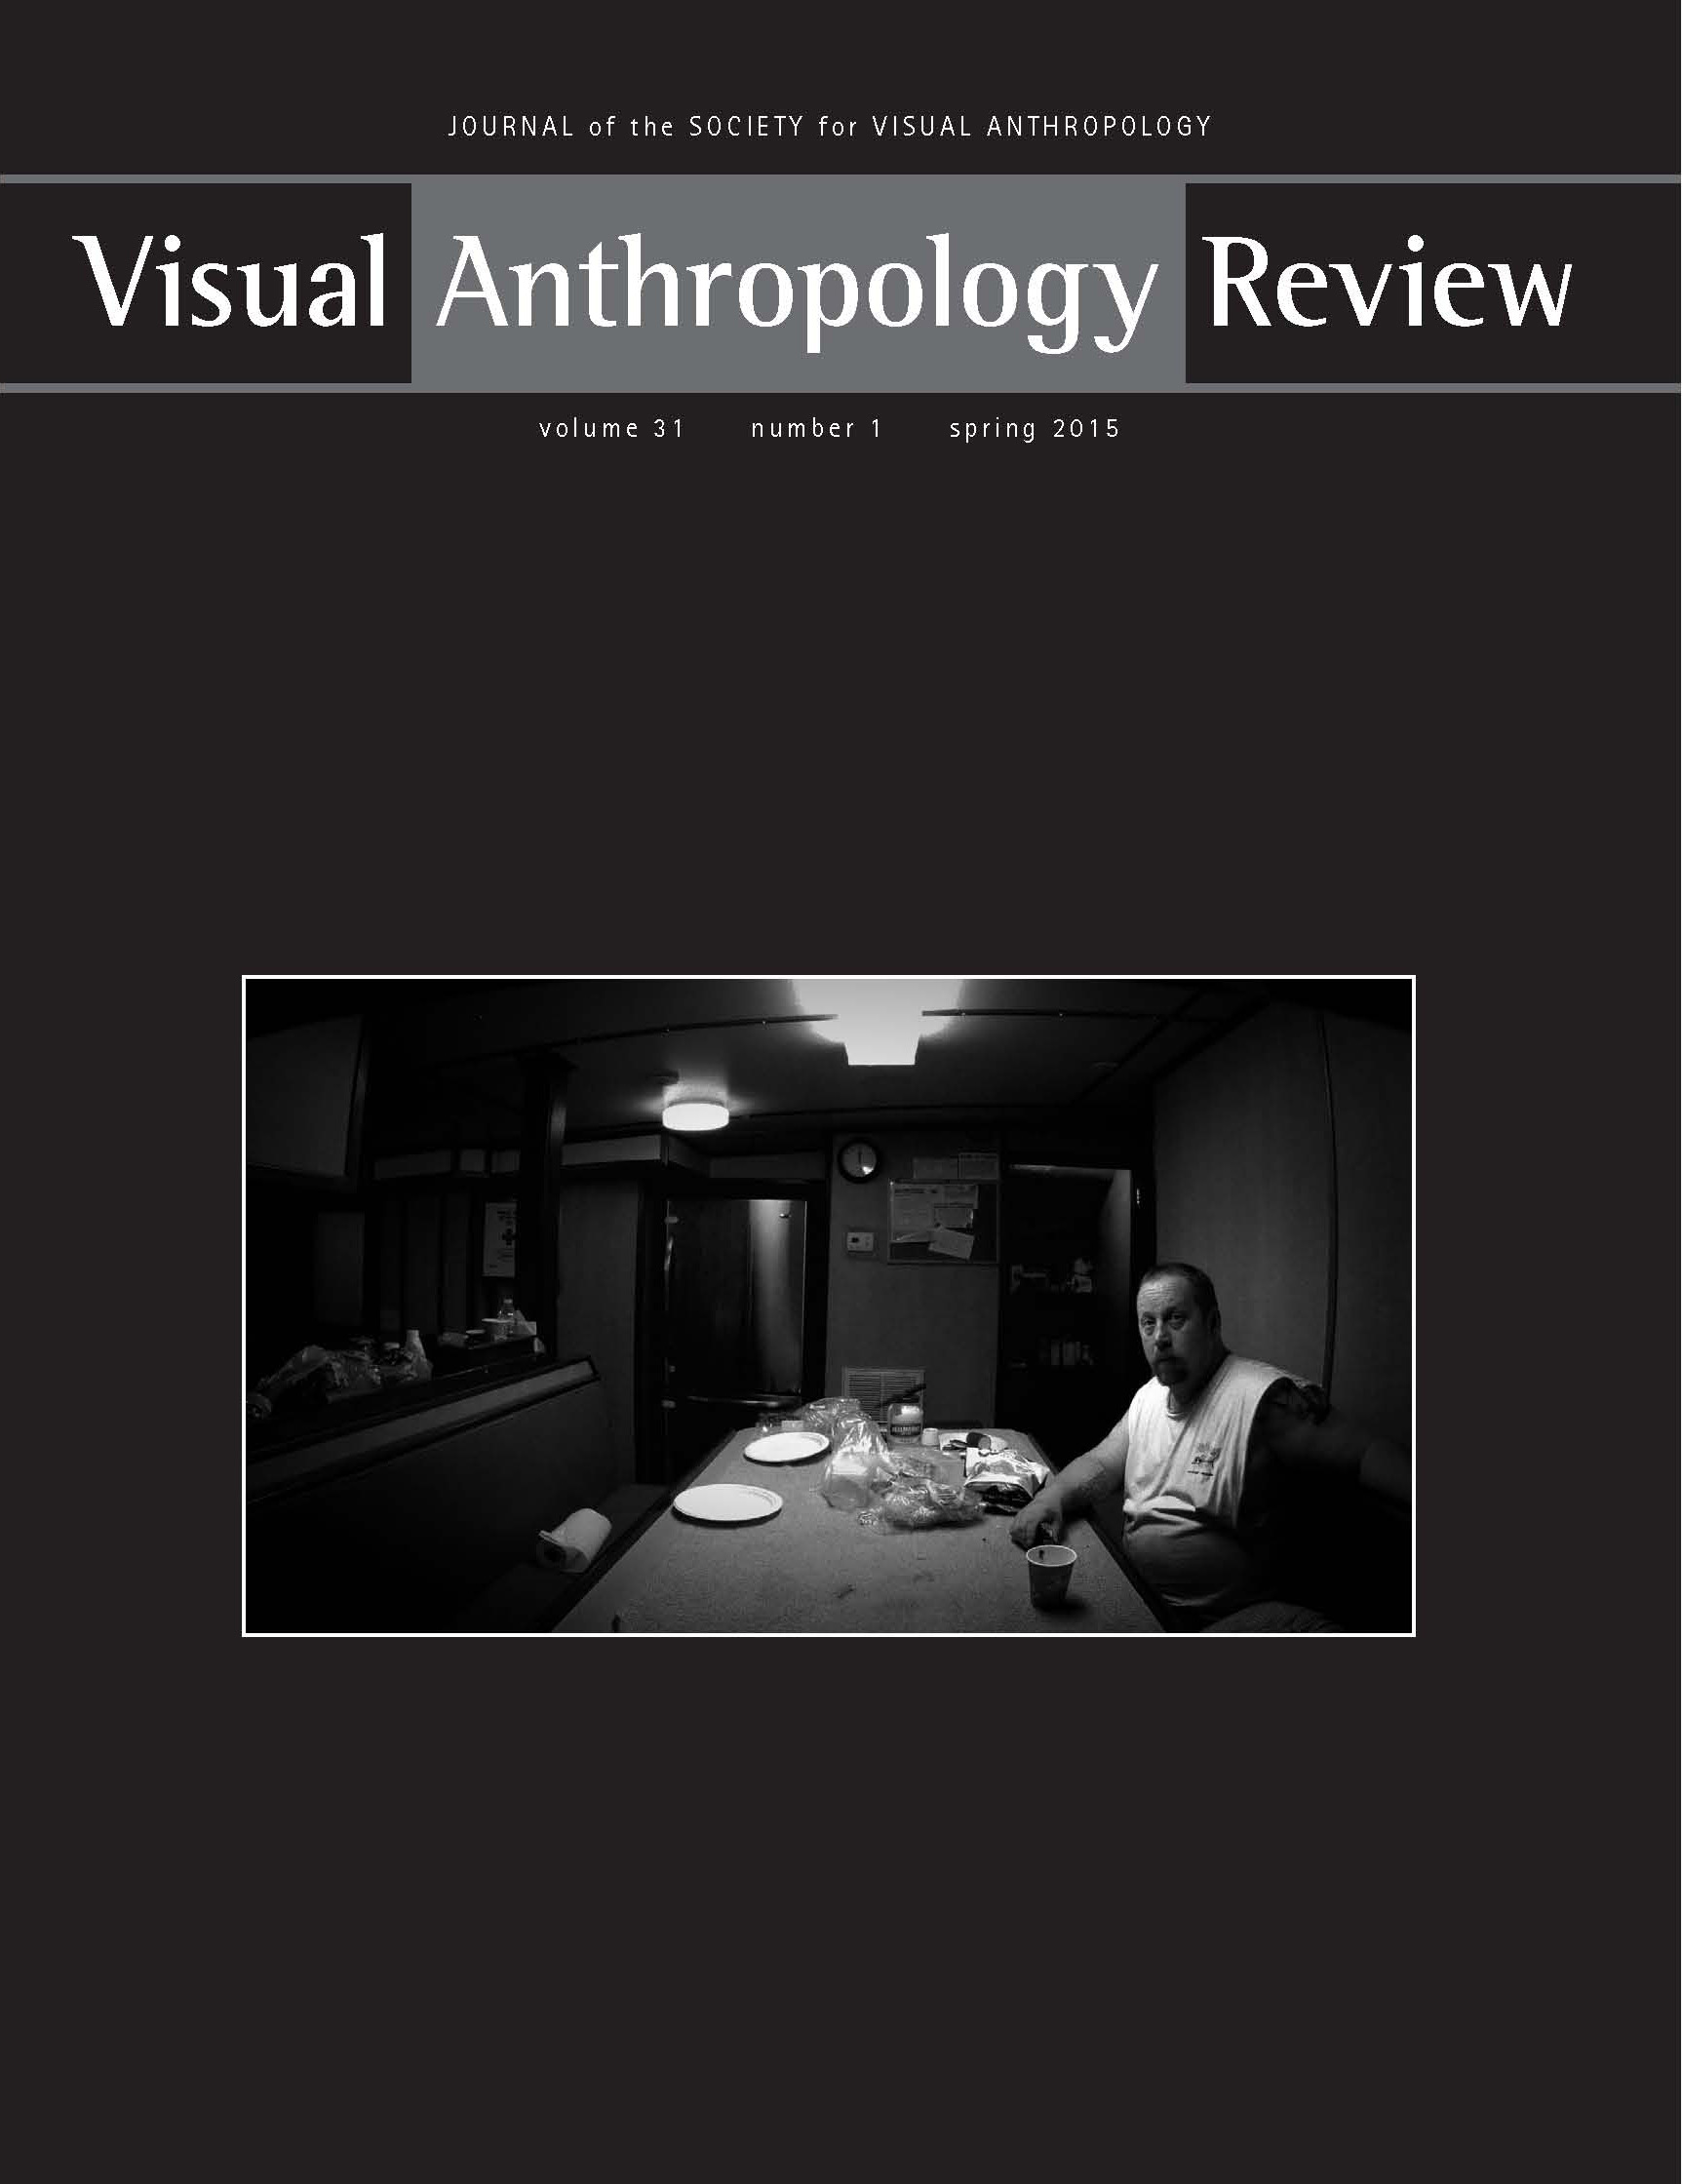 visual anthropology review society for visual vol 31 1 spring 2015